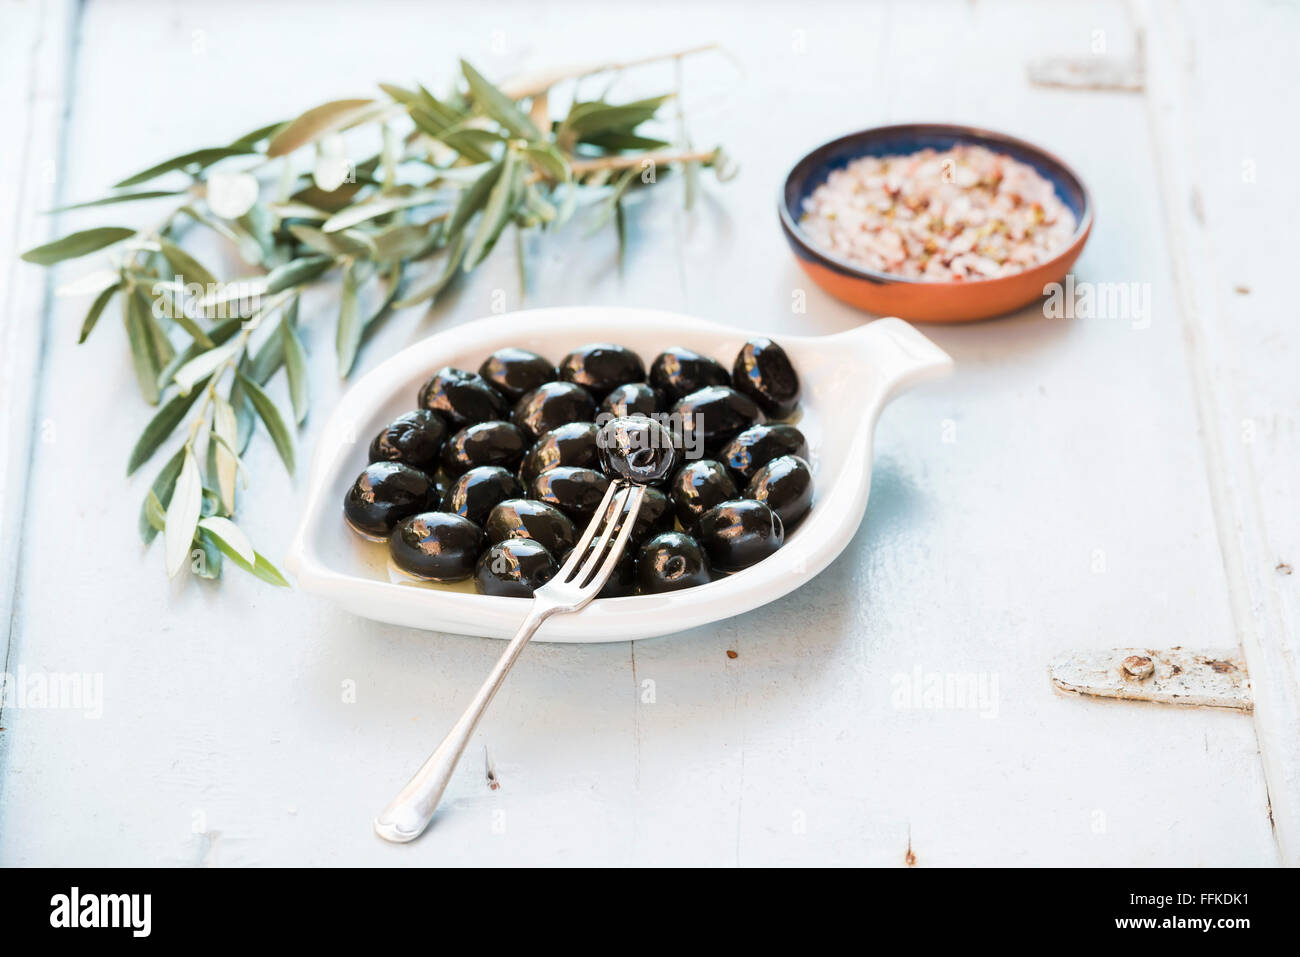 Black olives in white ceramic plate, branches and spices over light blue background, selective focus - Stock Image